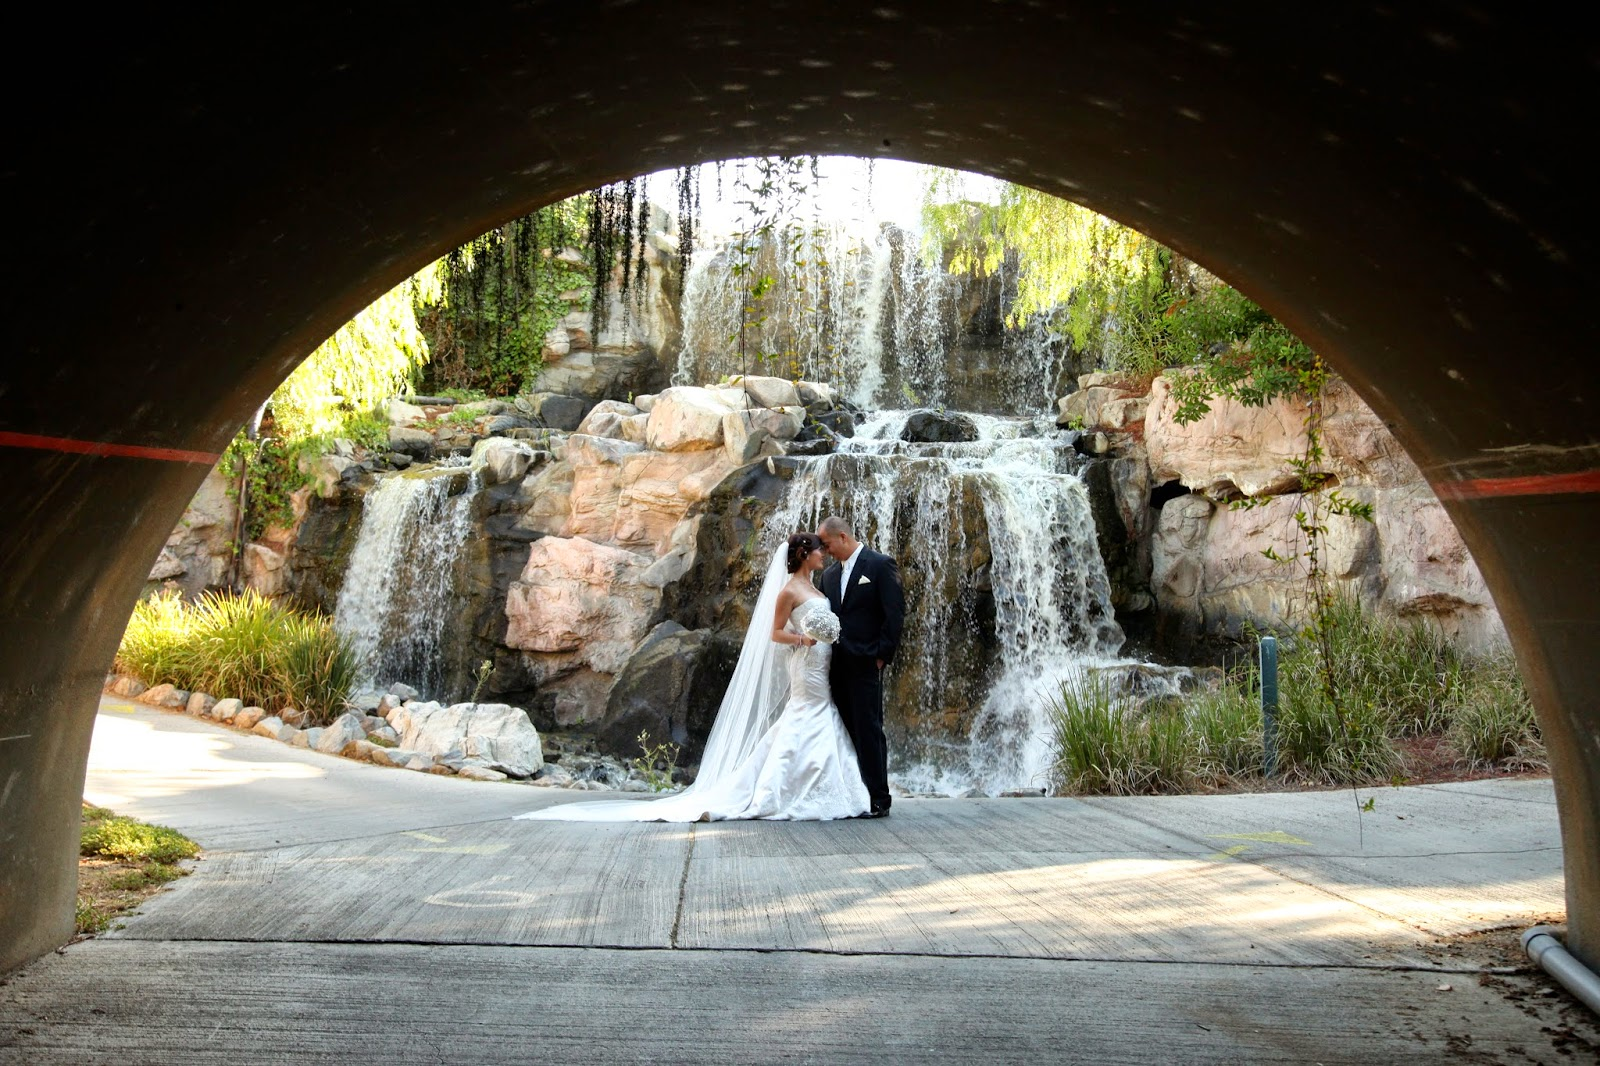 Wedgewood At The Retreat: Enchanted Portraiture: Paul And Crystal At The Retreat By